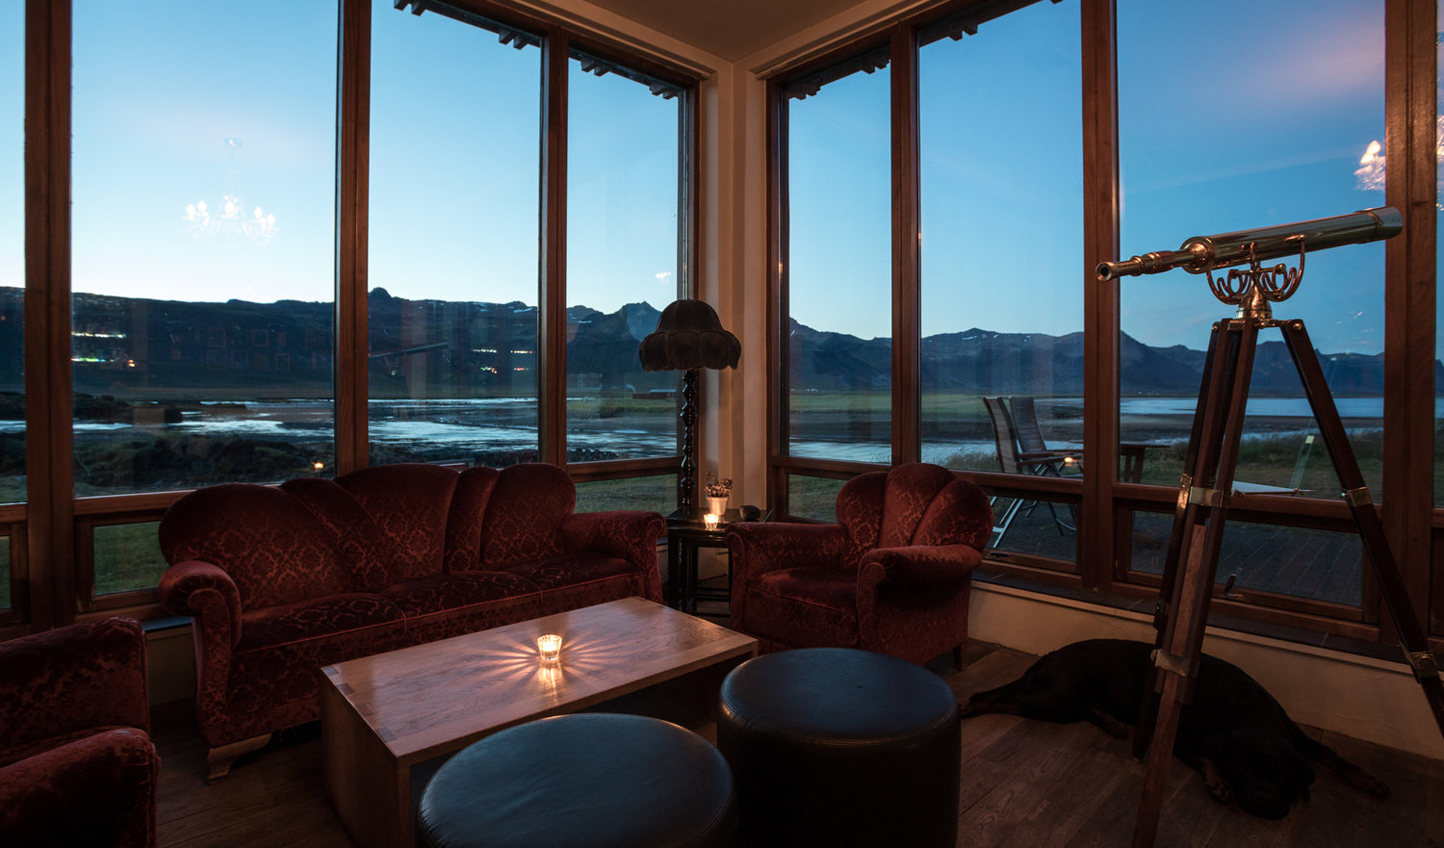 Keep an eye out for the Northern Lights from the snug lounge